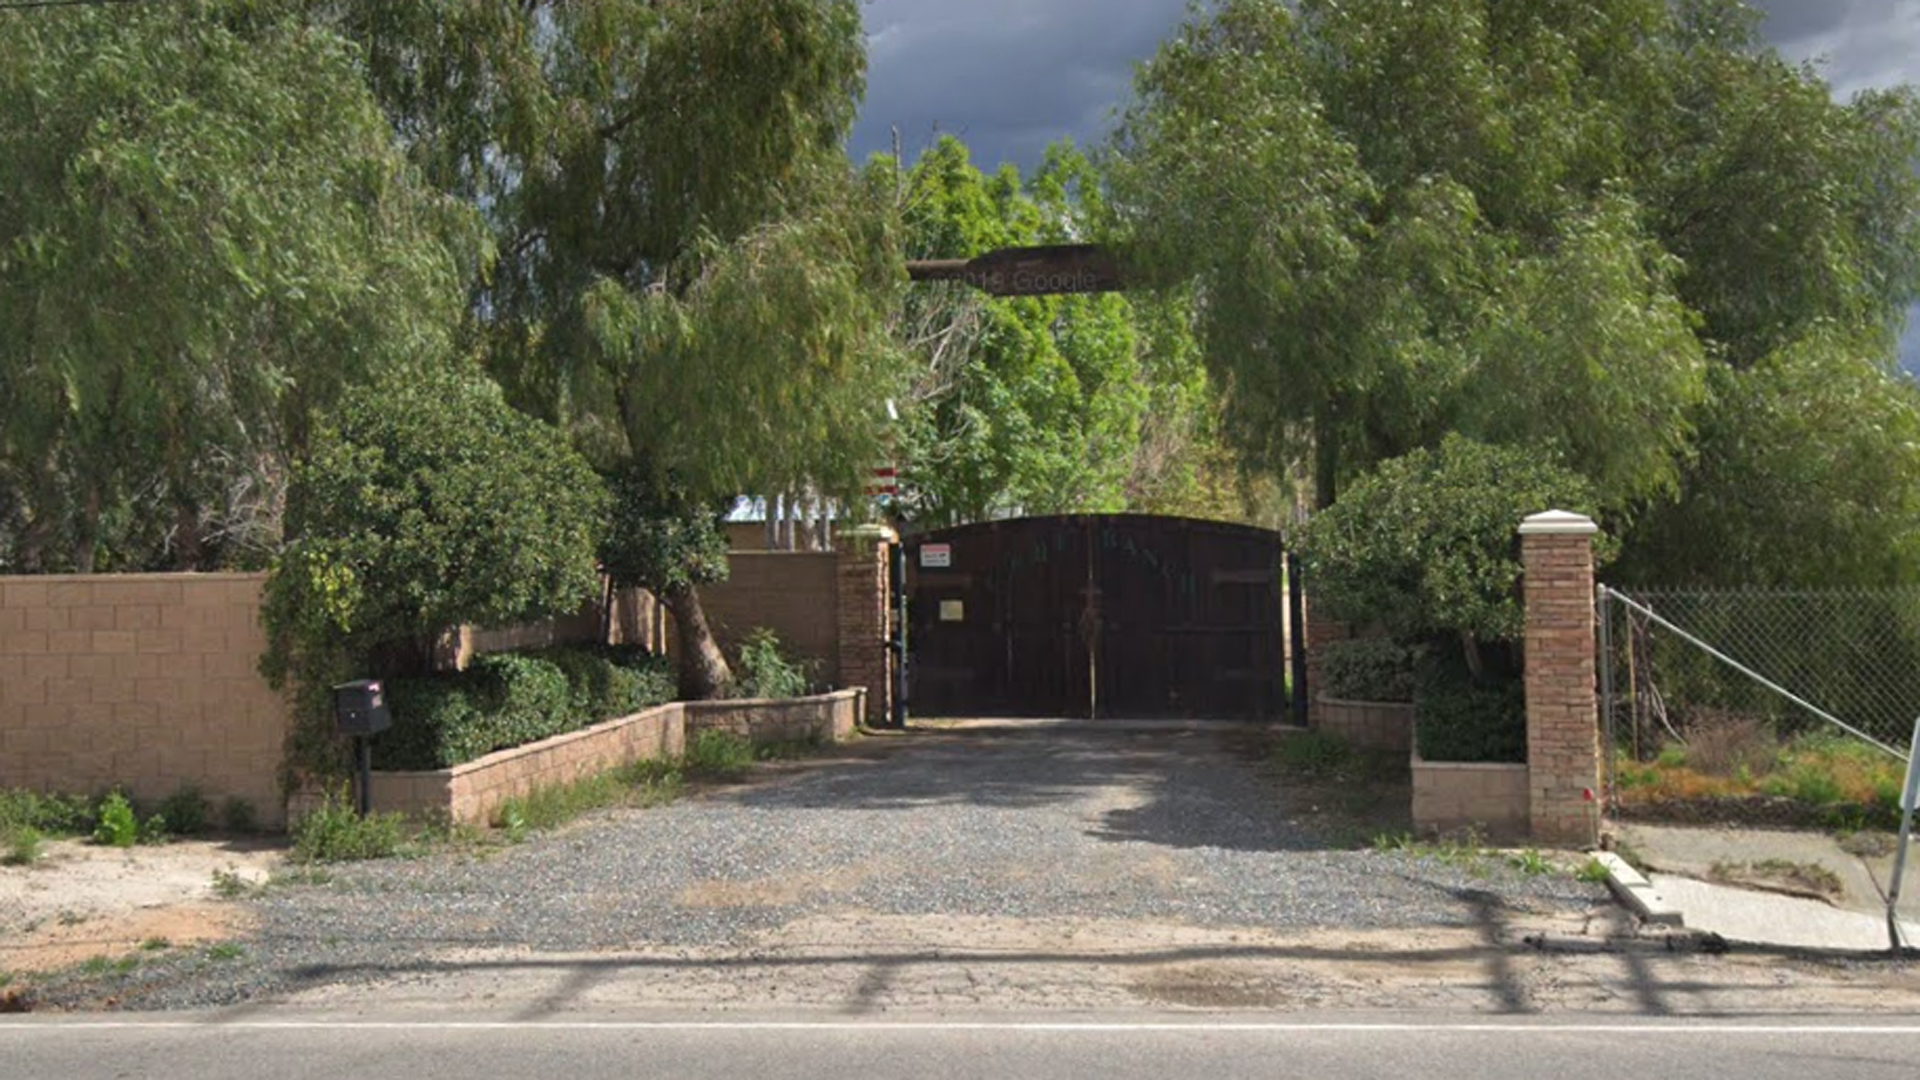 The entrance to the California Equine Retirement Foundation is seen in a Google Maps image.